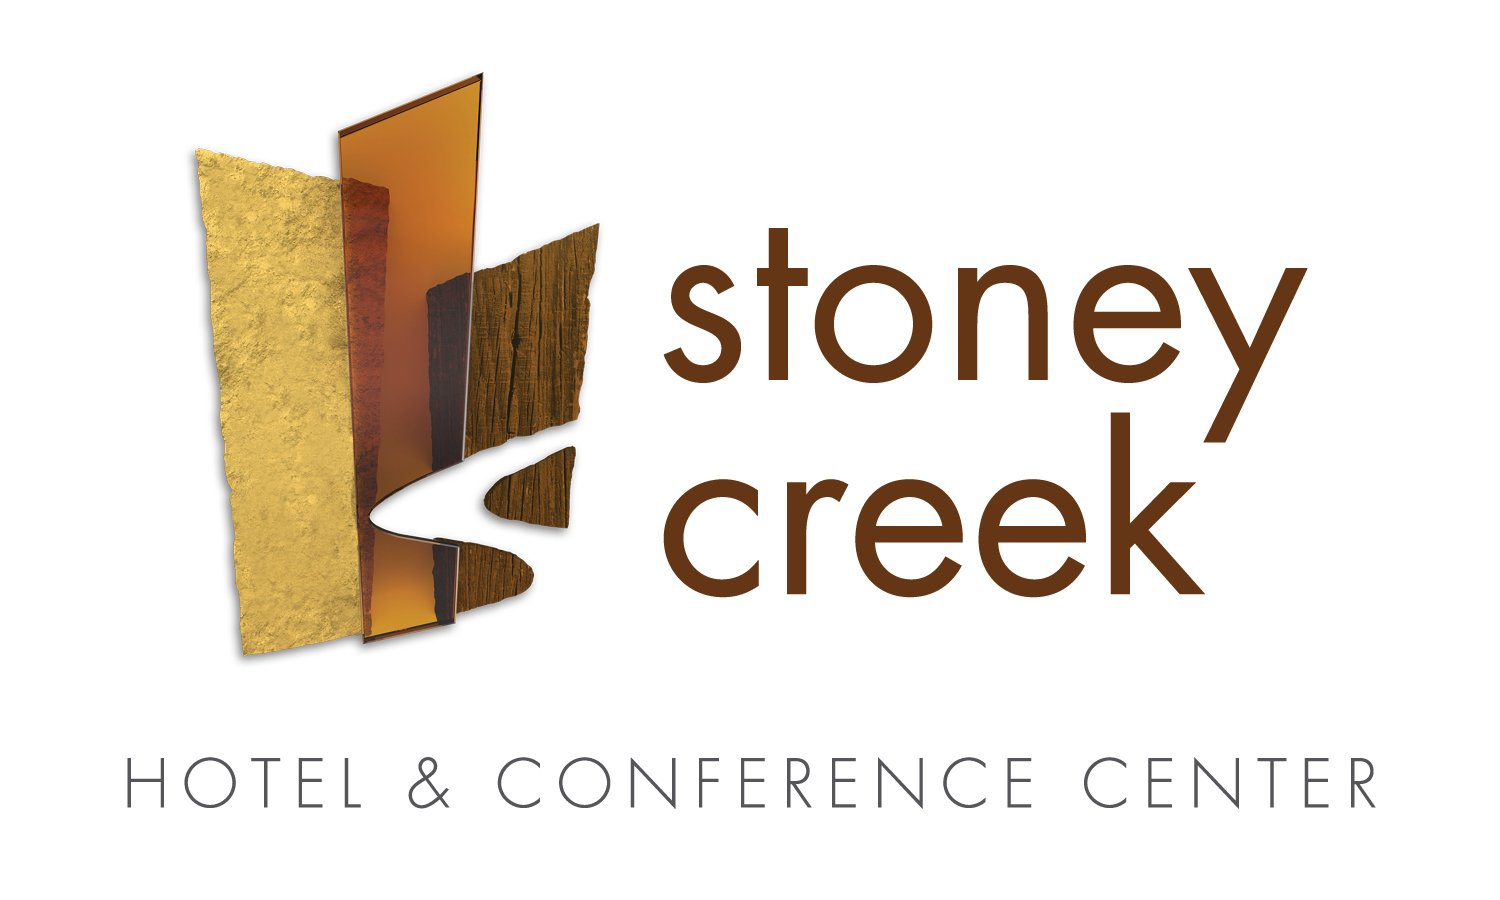 Stoney Creek Hotel and Conference Center | Sioux City, IA | siouxcityjournal.com